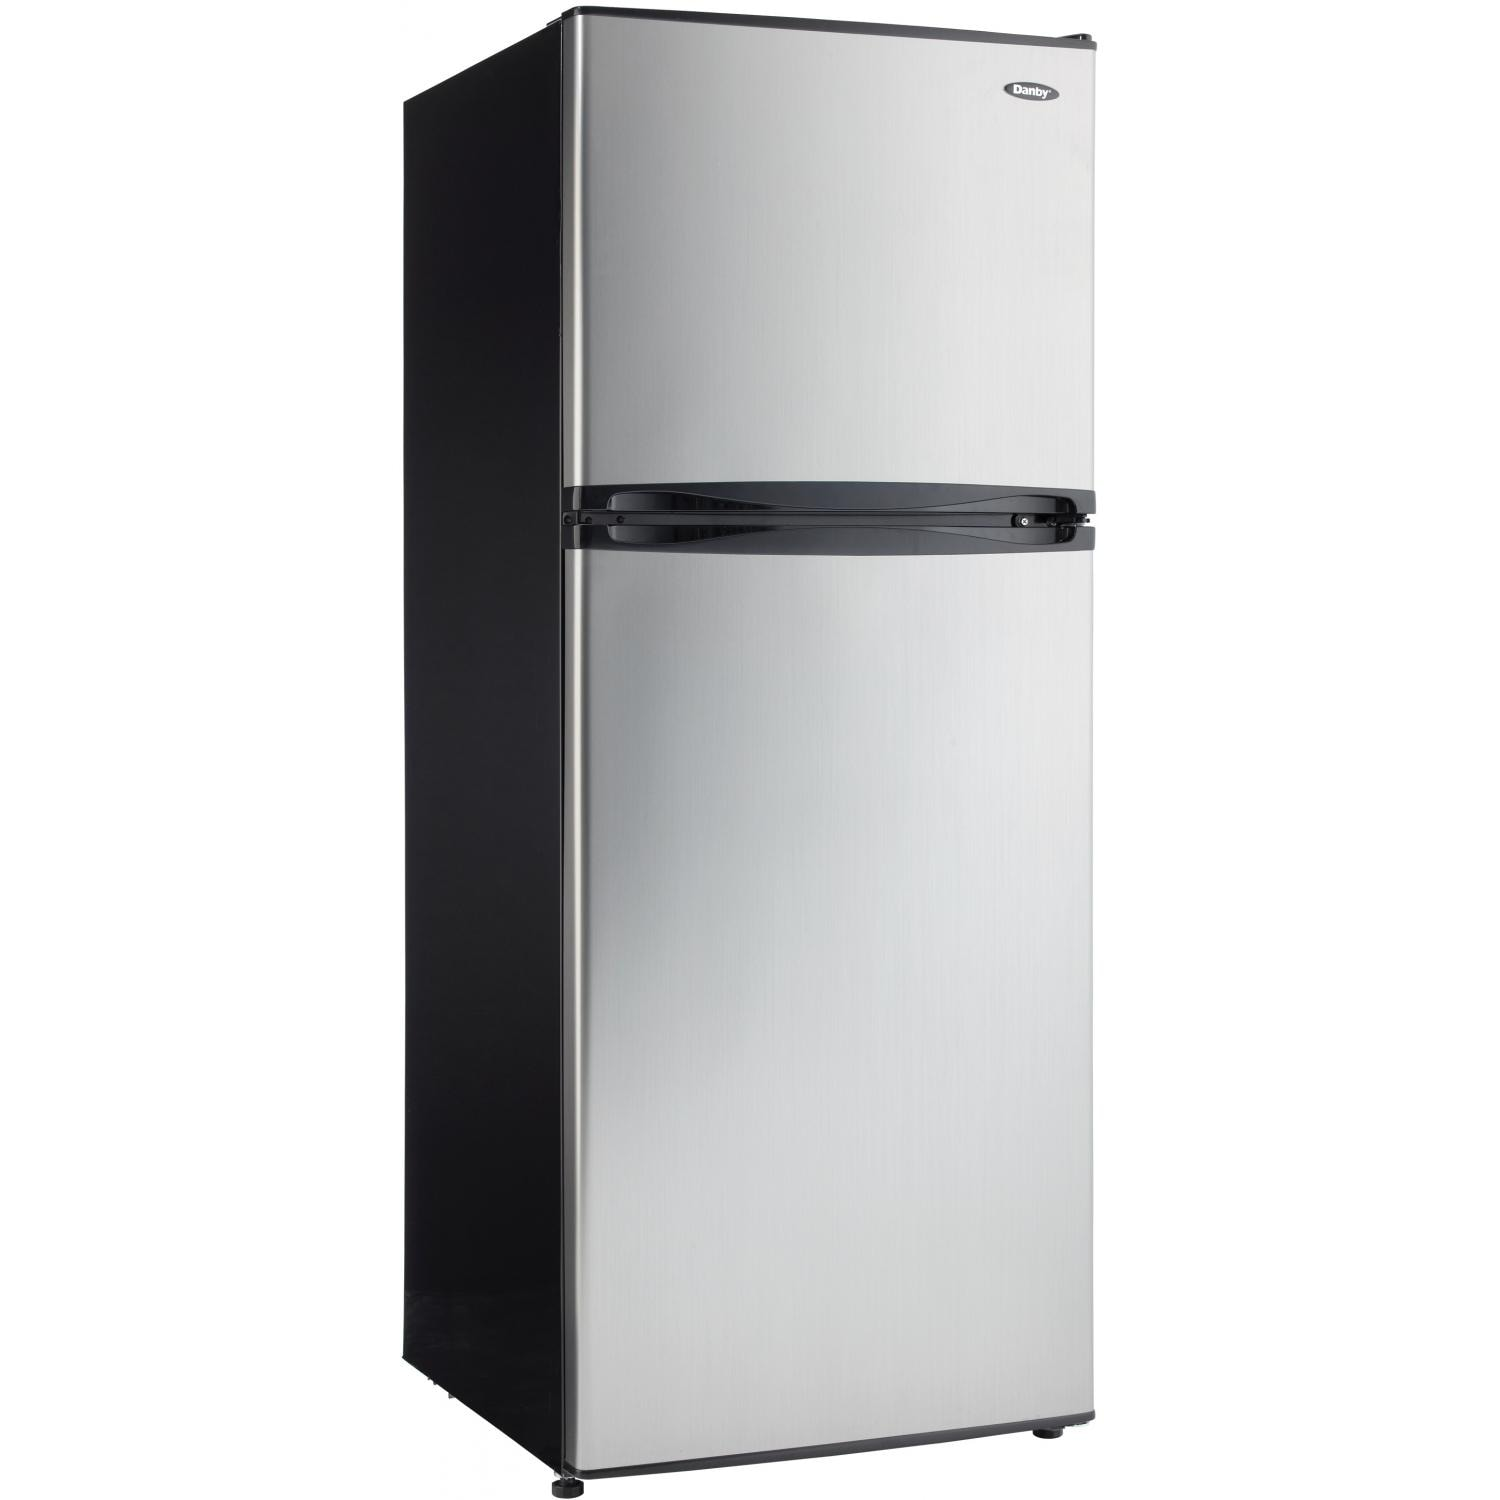 Danby 10.0 Cu. Ft. Refrigerator - Stainless Steel - DFF10...